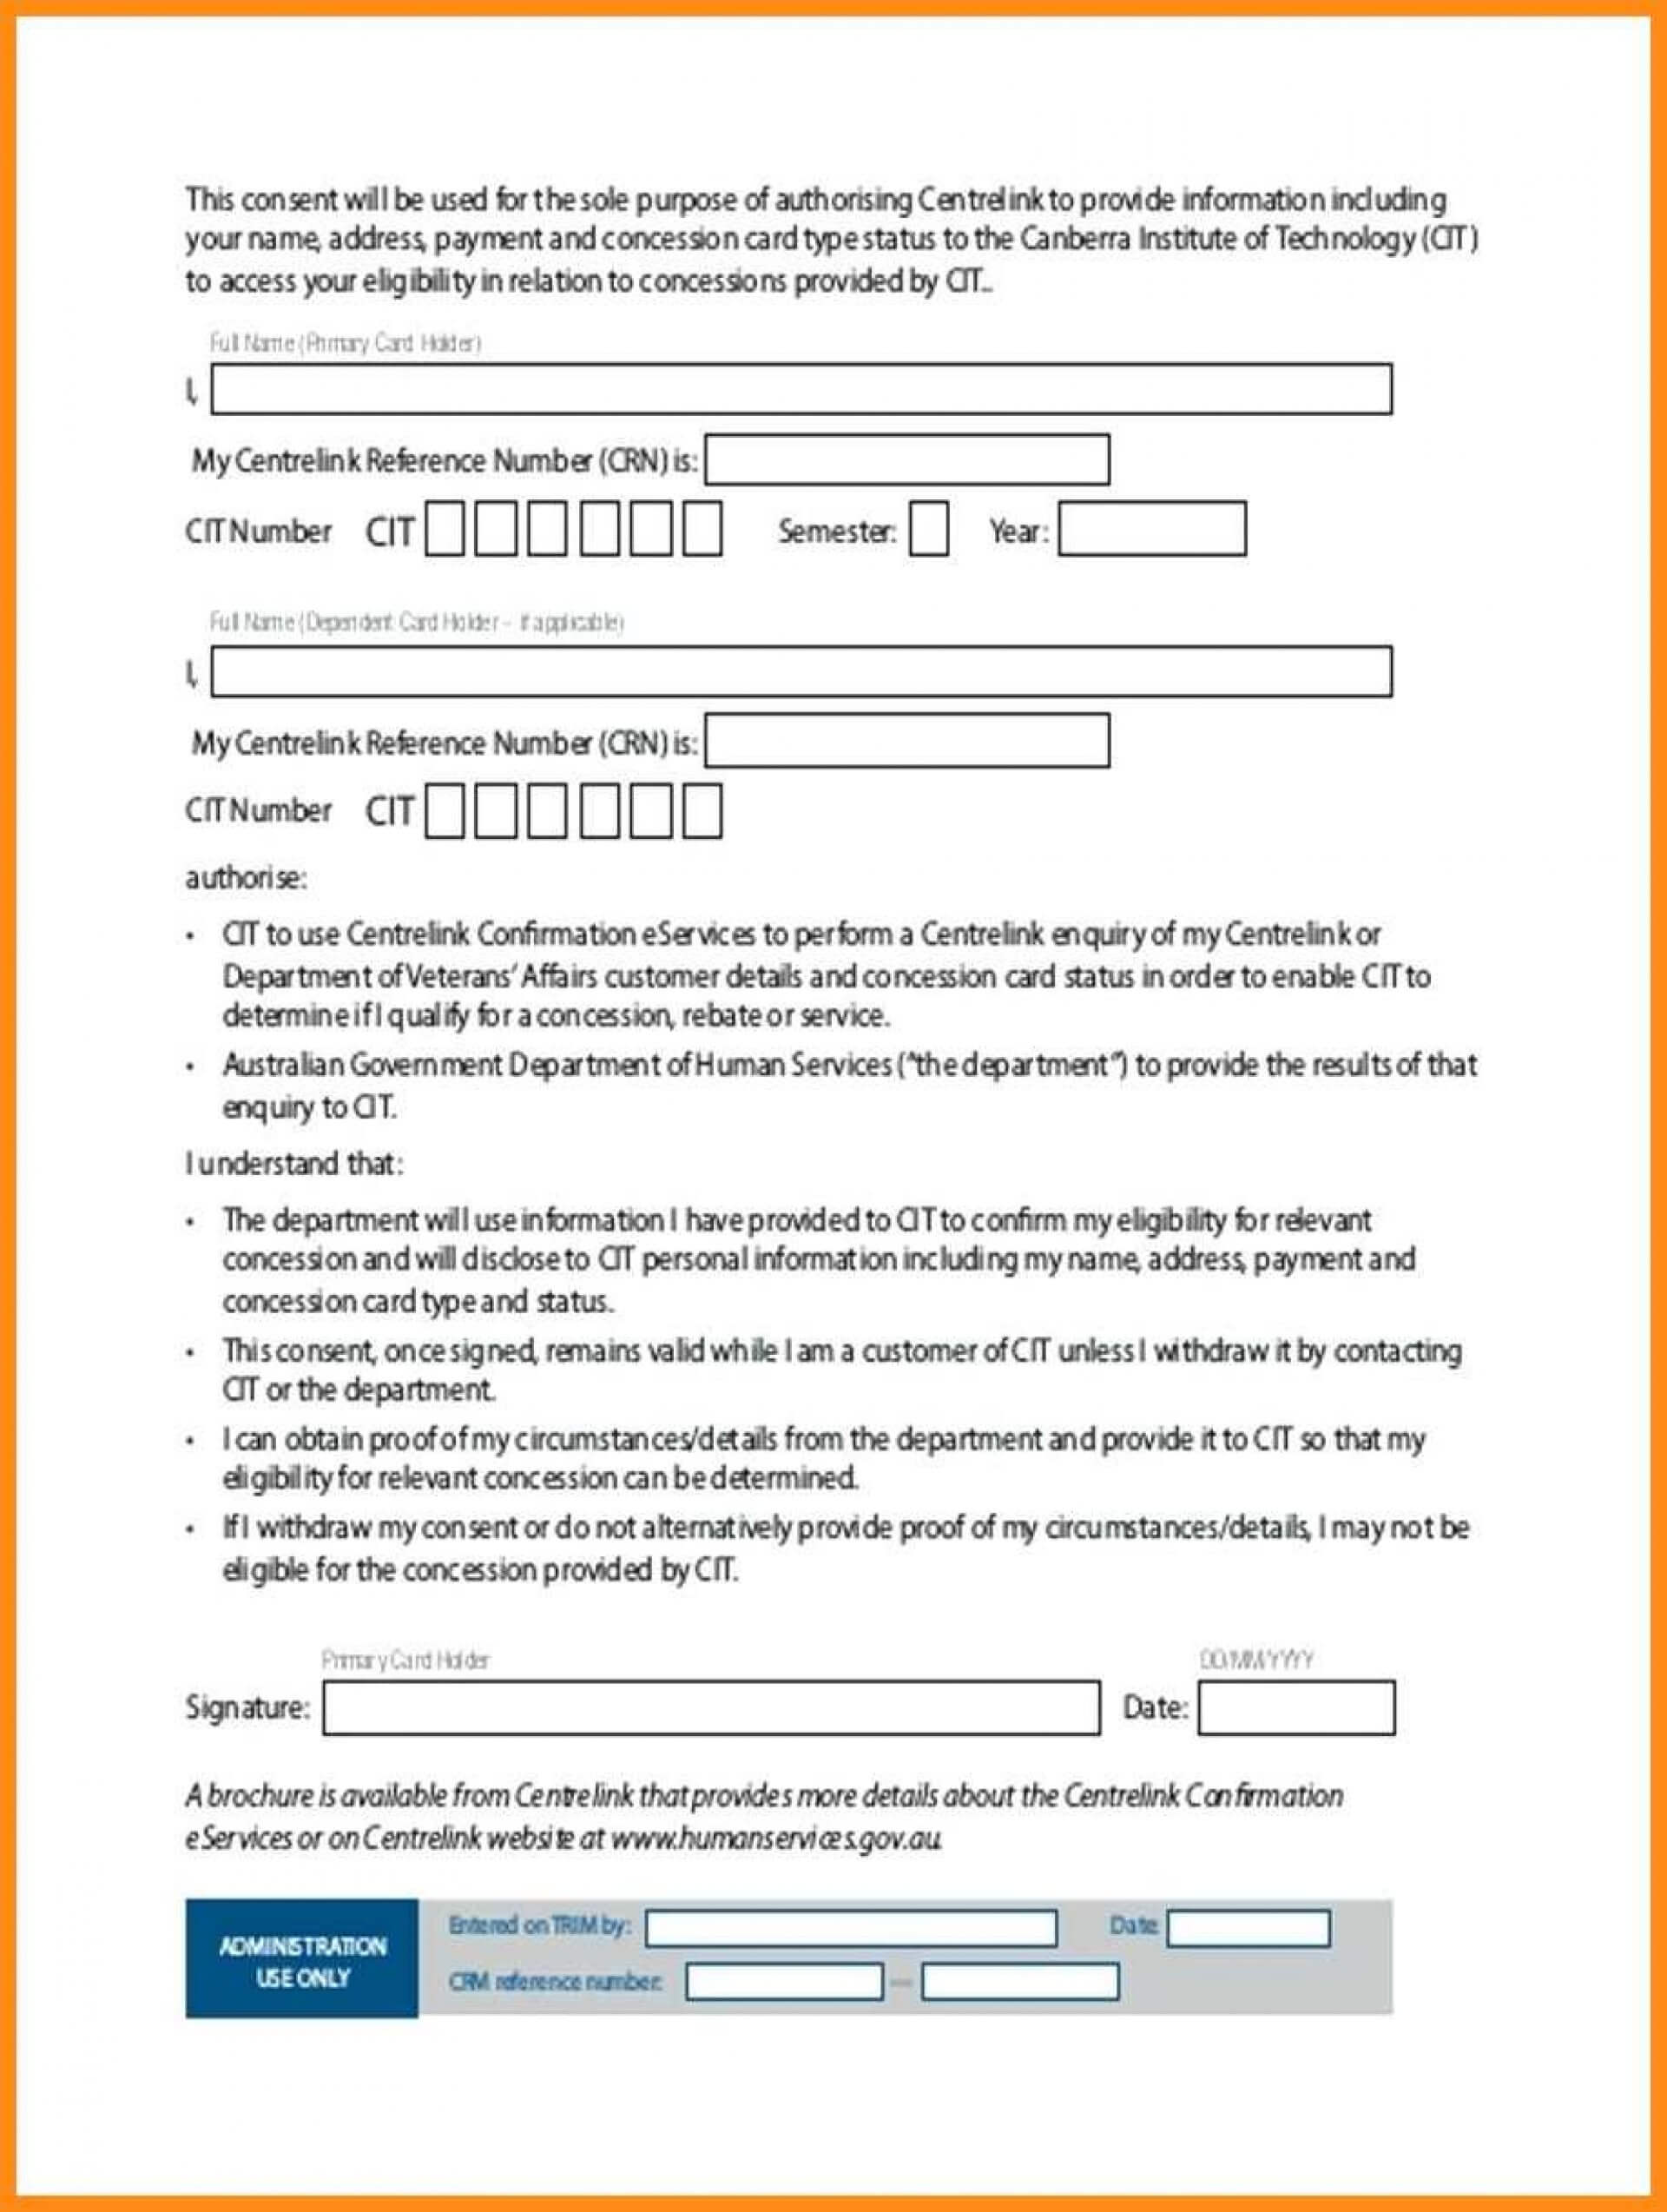 023 Word Form Template Drop Down 16X9 Impressive Ideas Pertaining To Enquiry Form Template Word